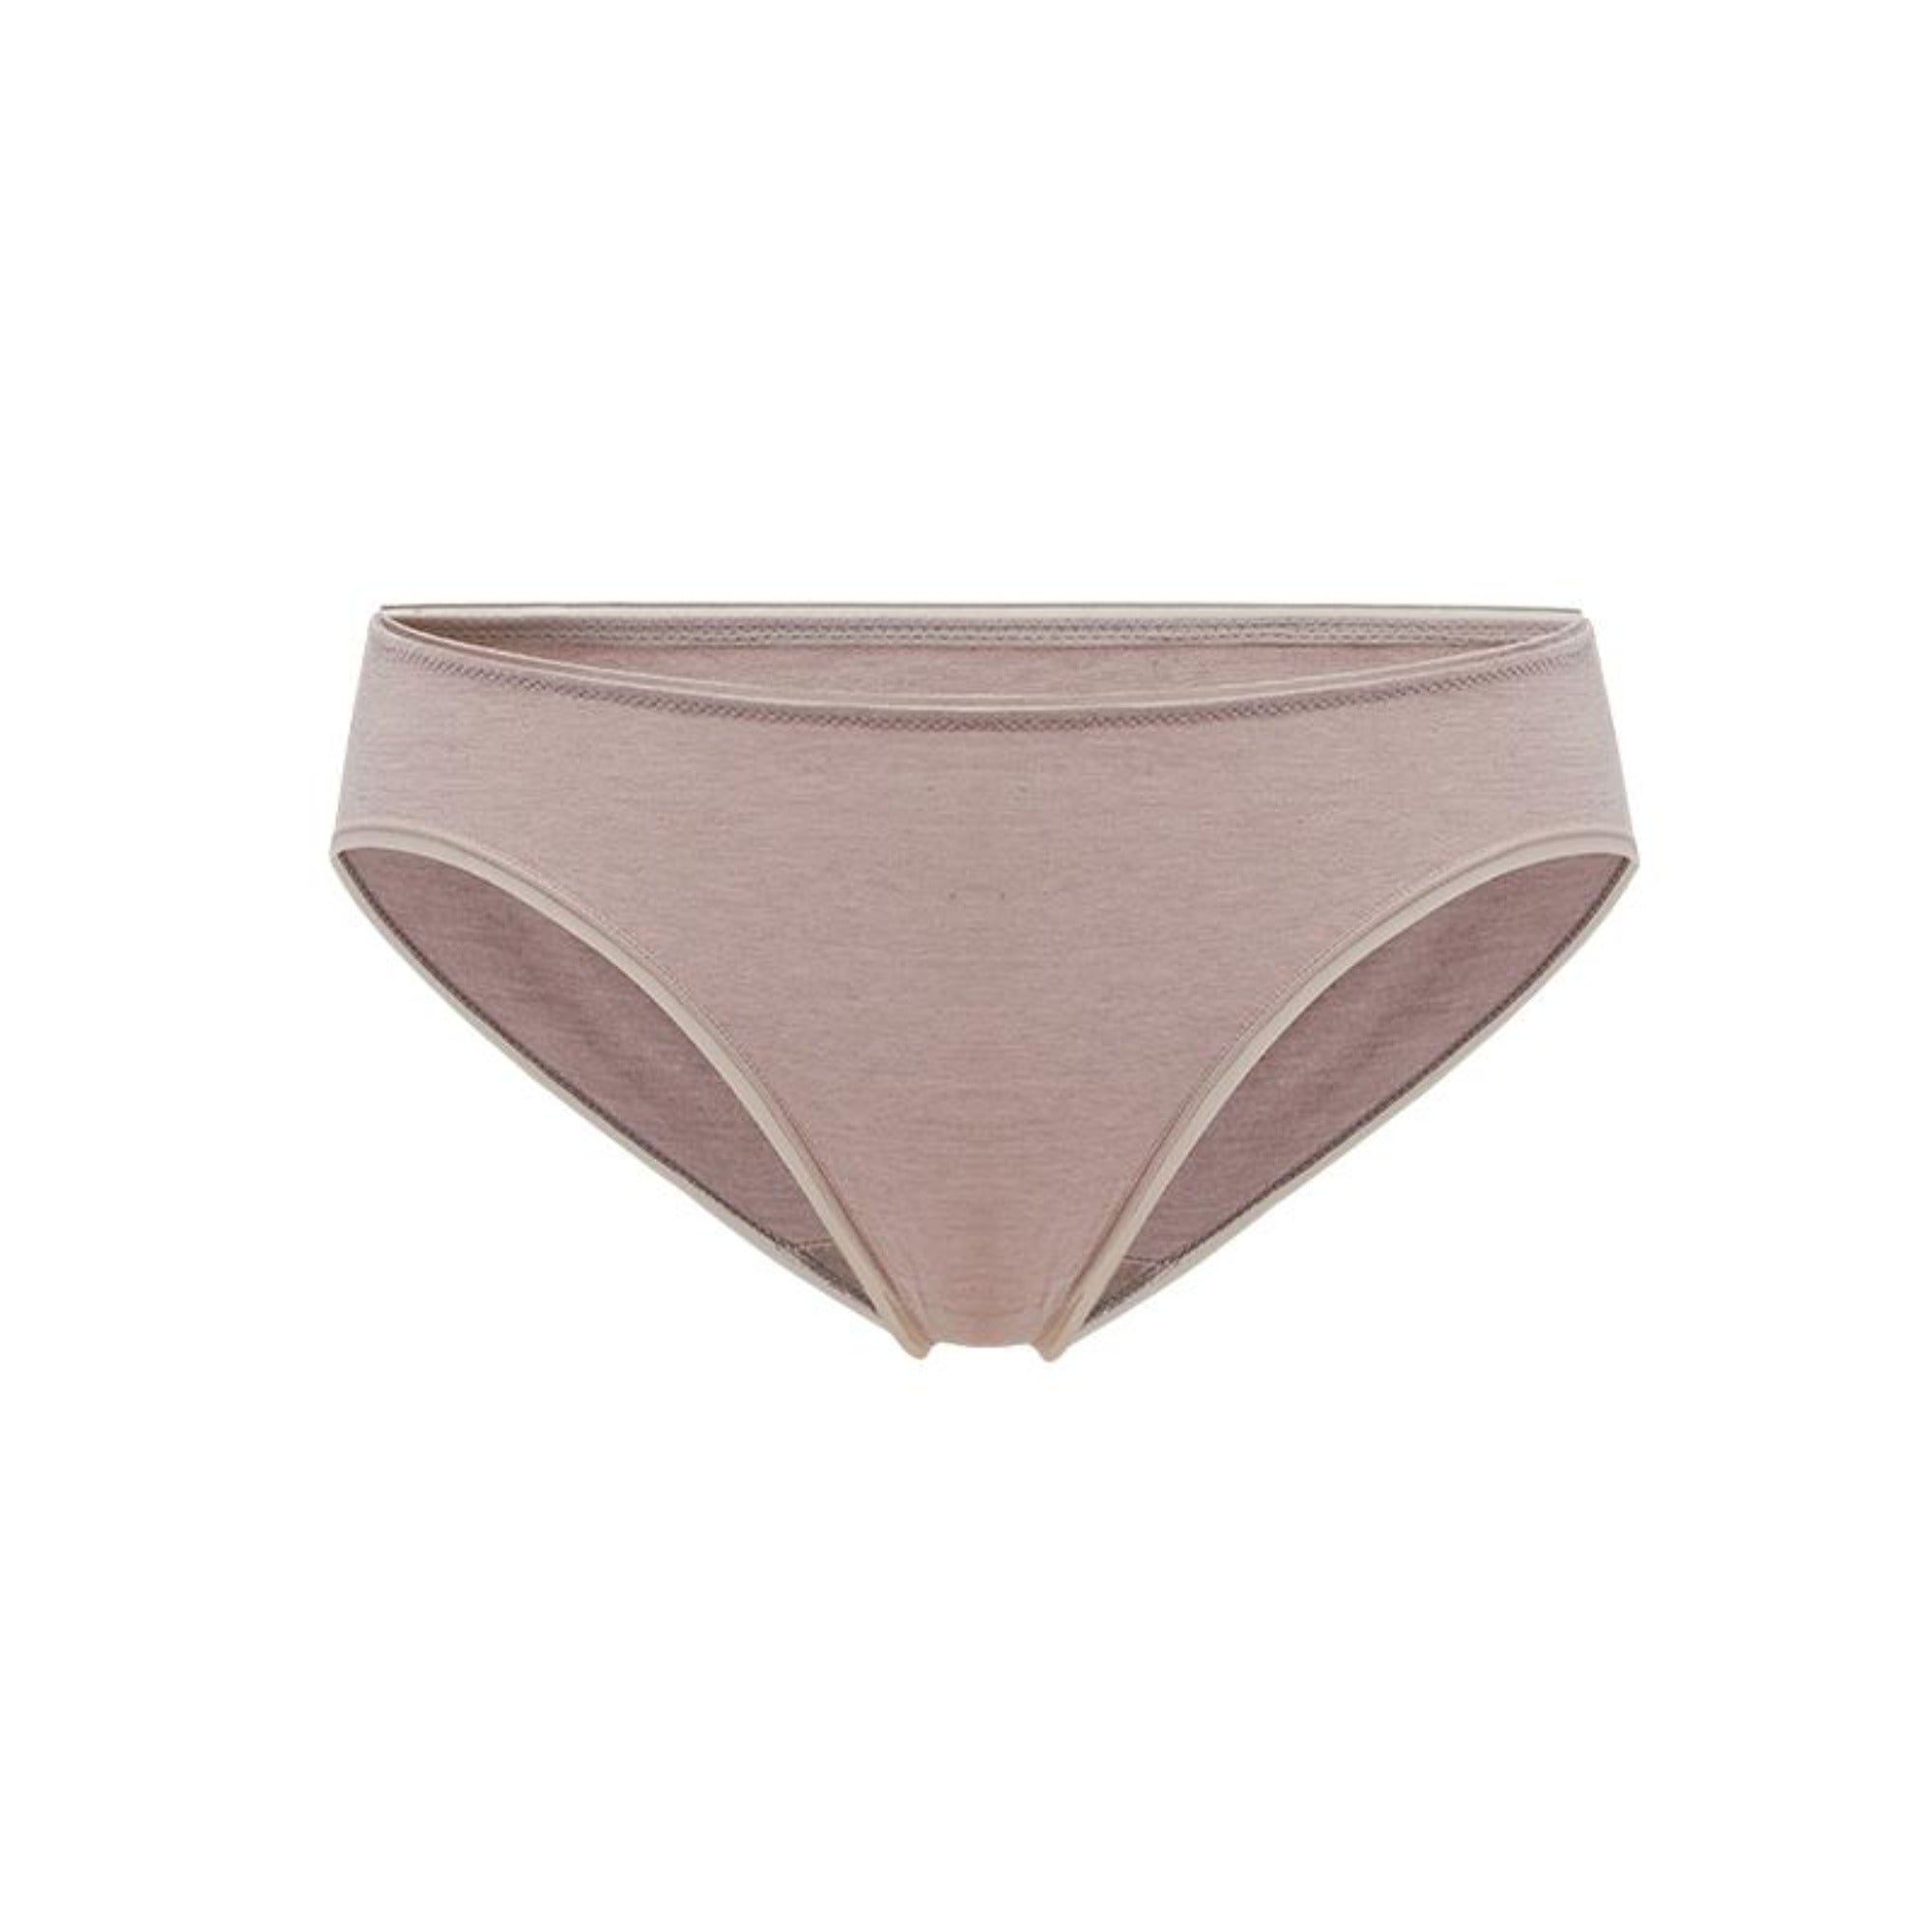 NEIWAI Hollow Stitching Low Waist Briefs in Cloud Gray